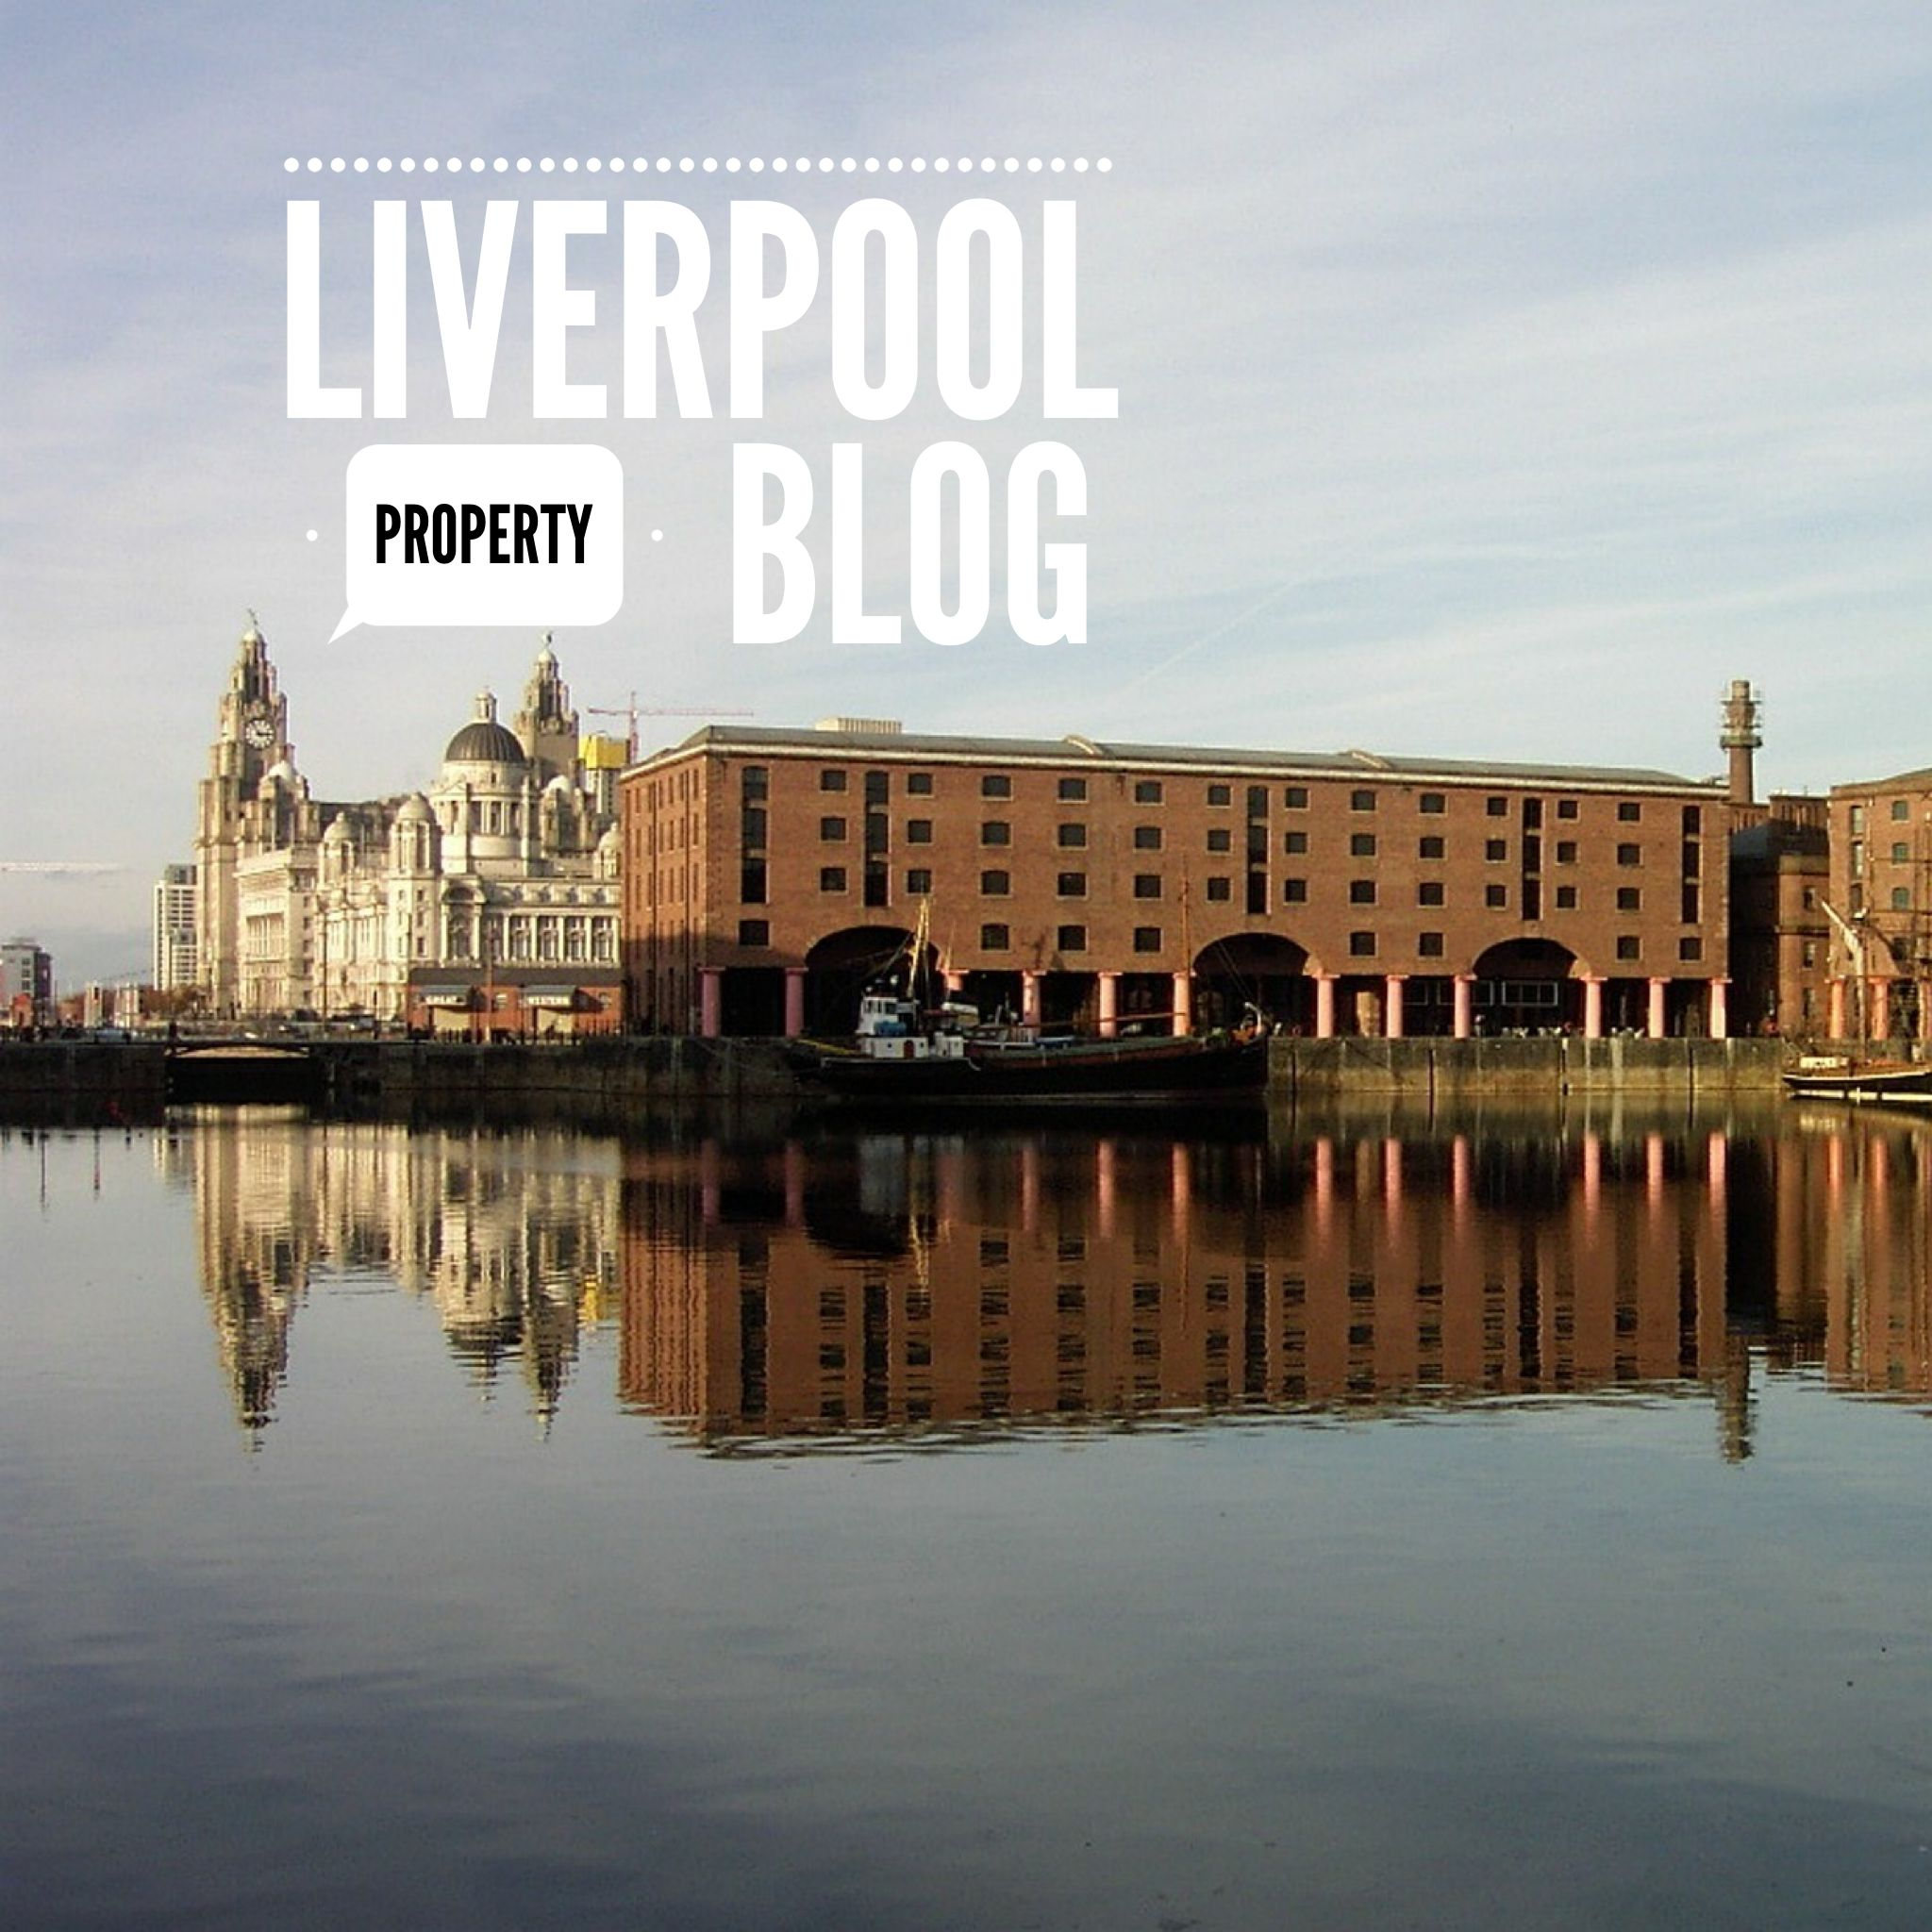 Liverpool Property Blog